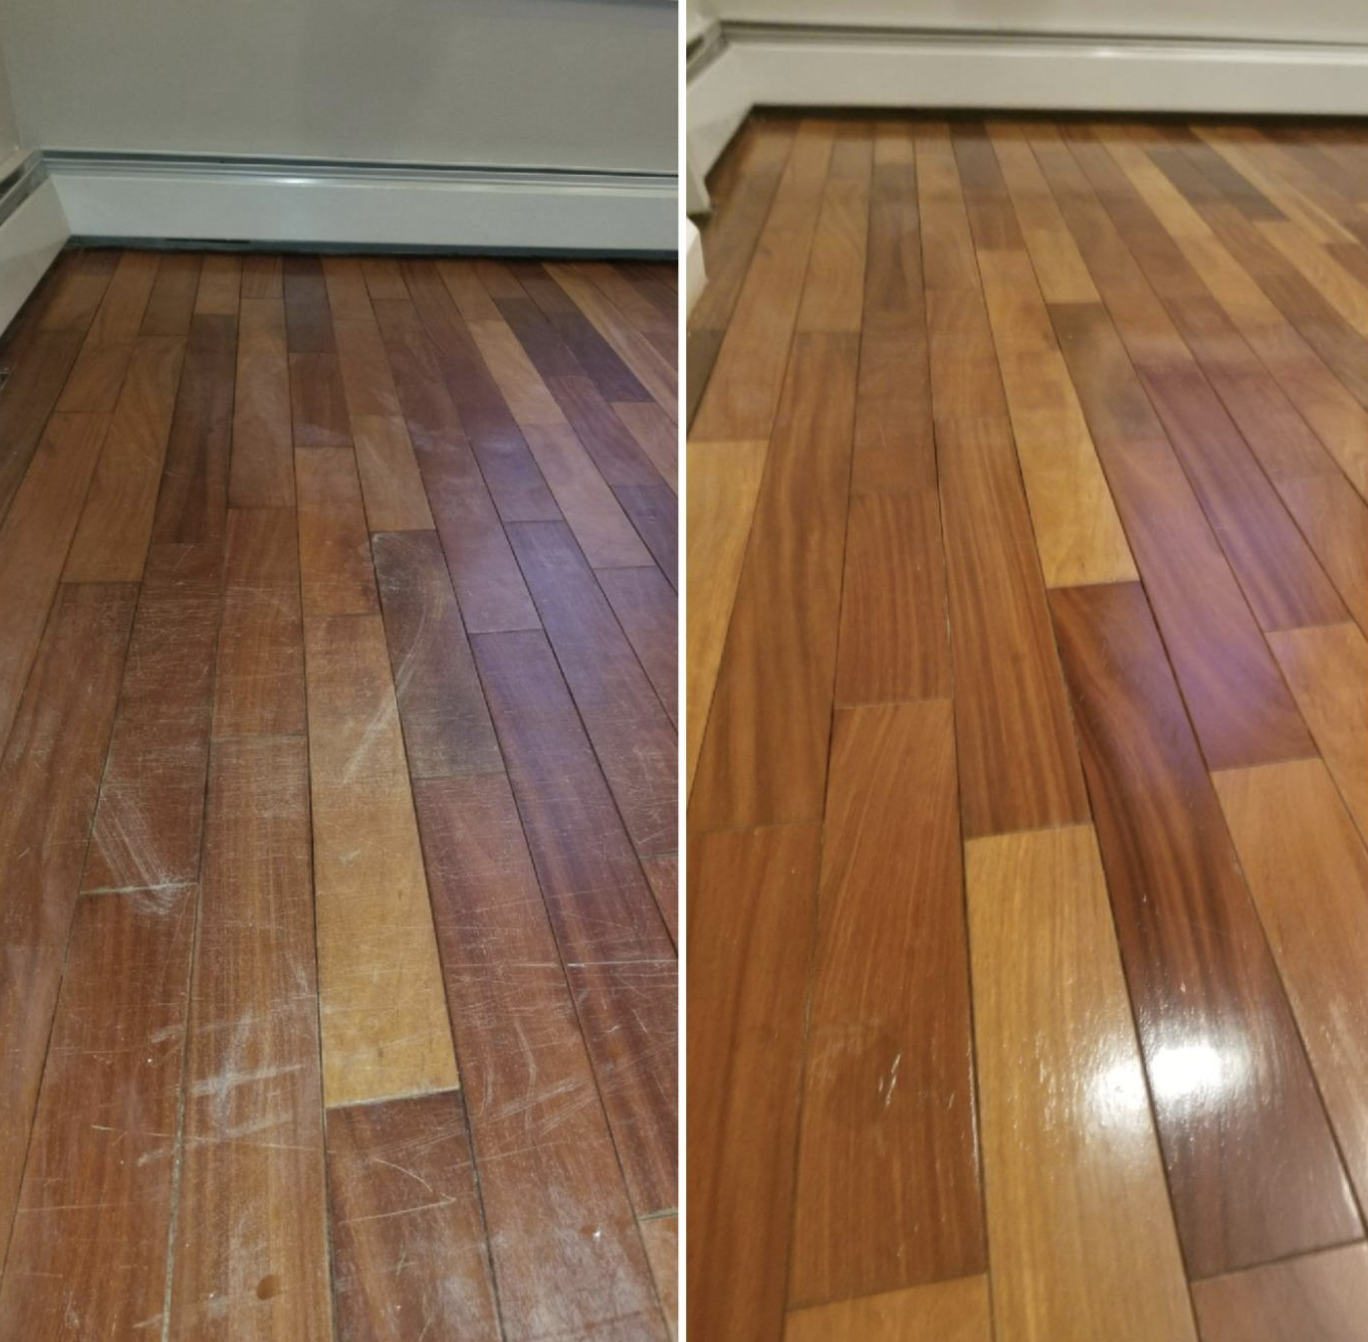 Reviewer's before-and-after picture of wood floors with the after pic showing shiny, scratch-free floors